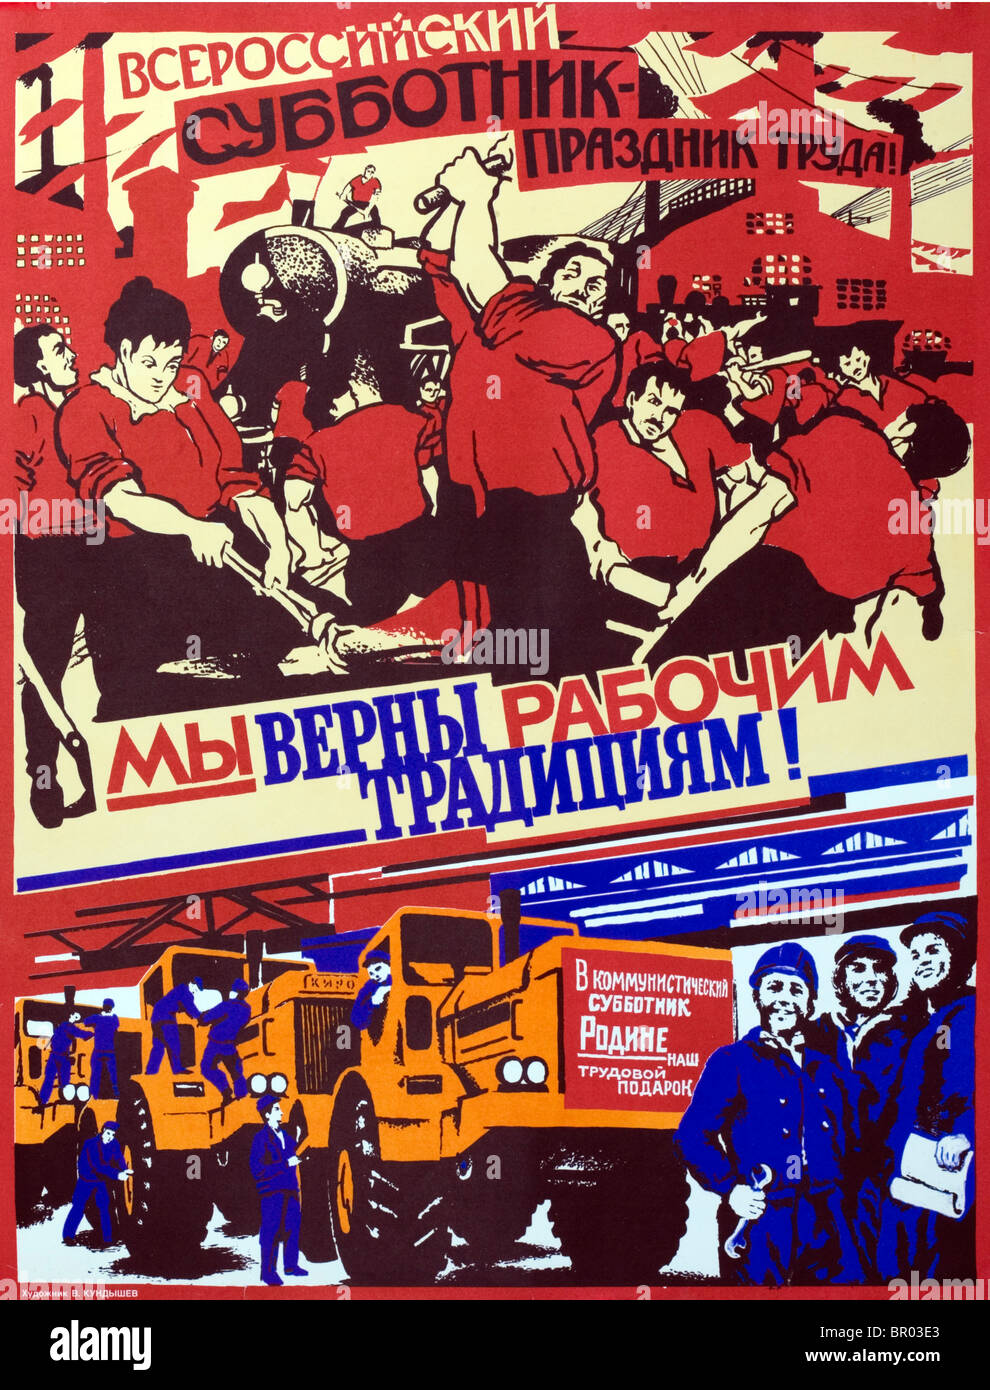 Poster celebrating industry and science in the Soviet Union (USSR ...